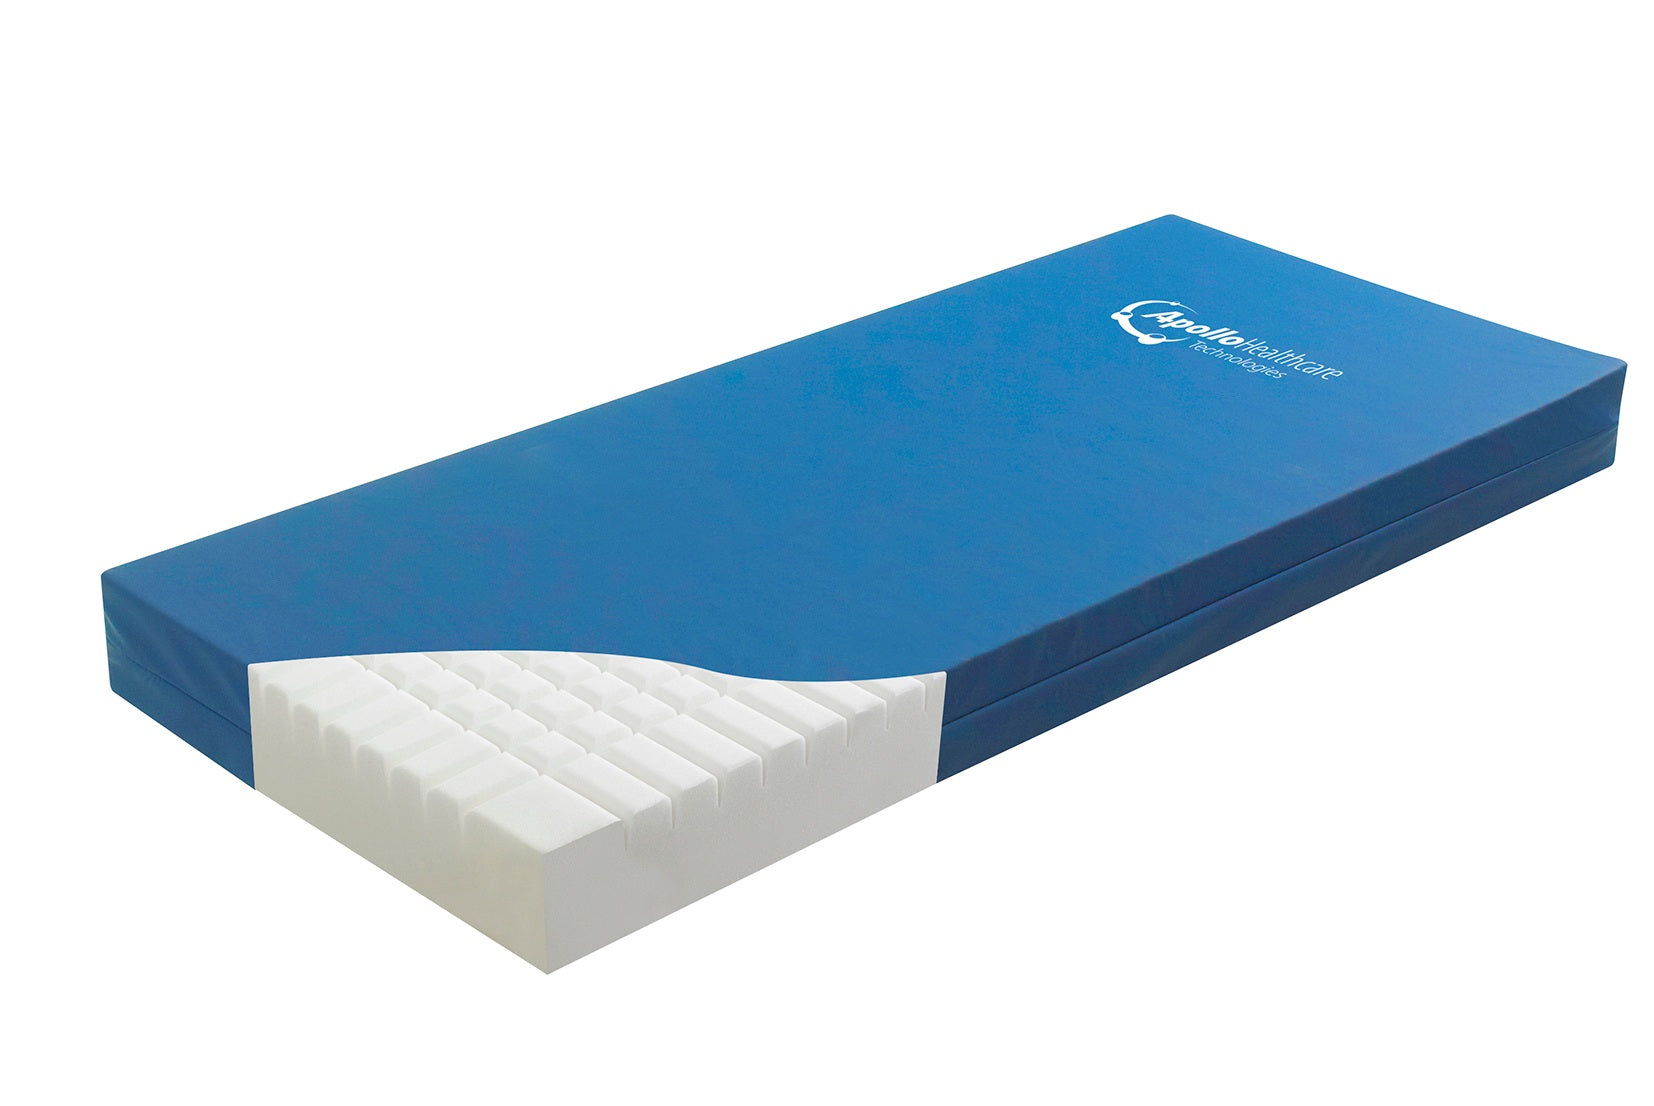 Community Plus Static Healthcare Mattress - Cheap Beds Direct